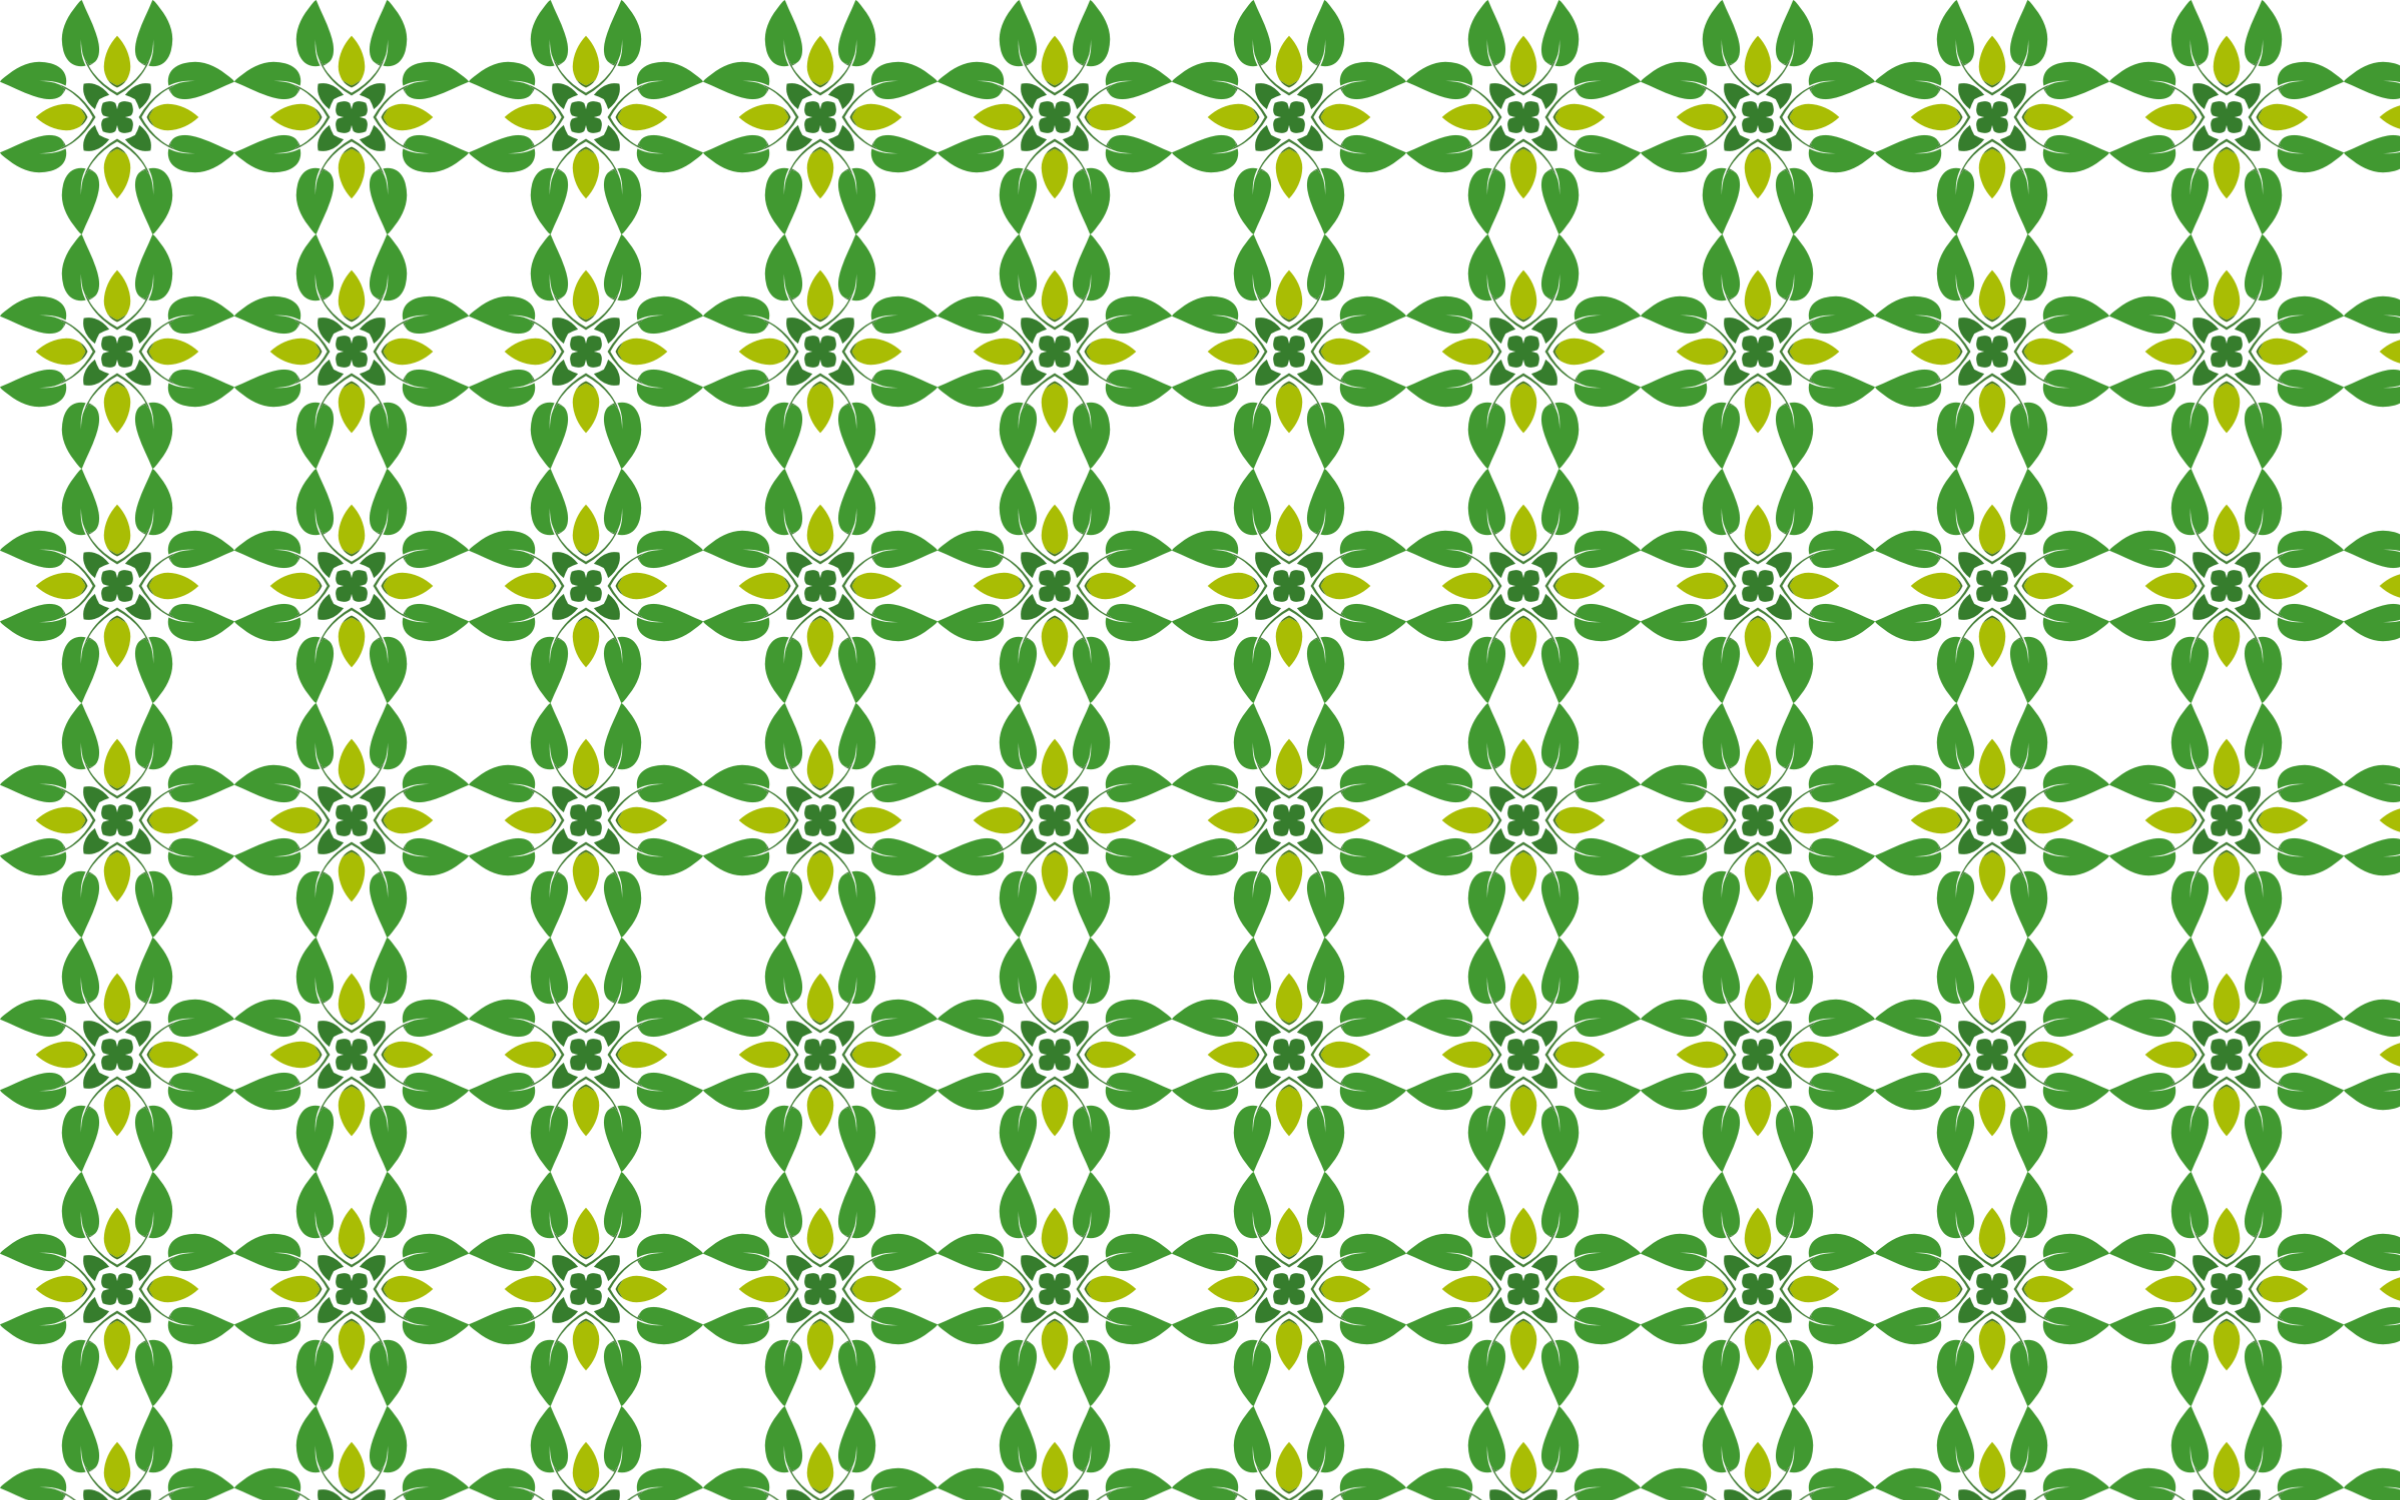 Leafy Design Seamless Pattern by GDJ